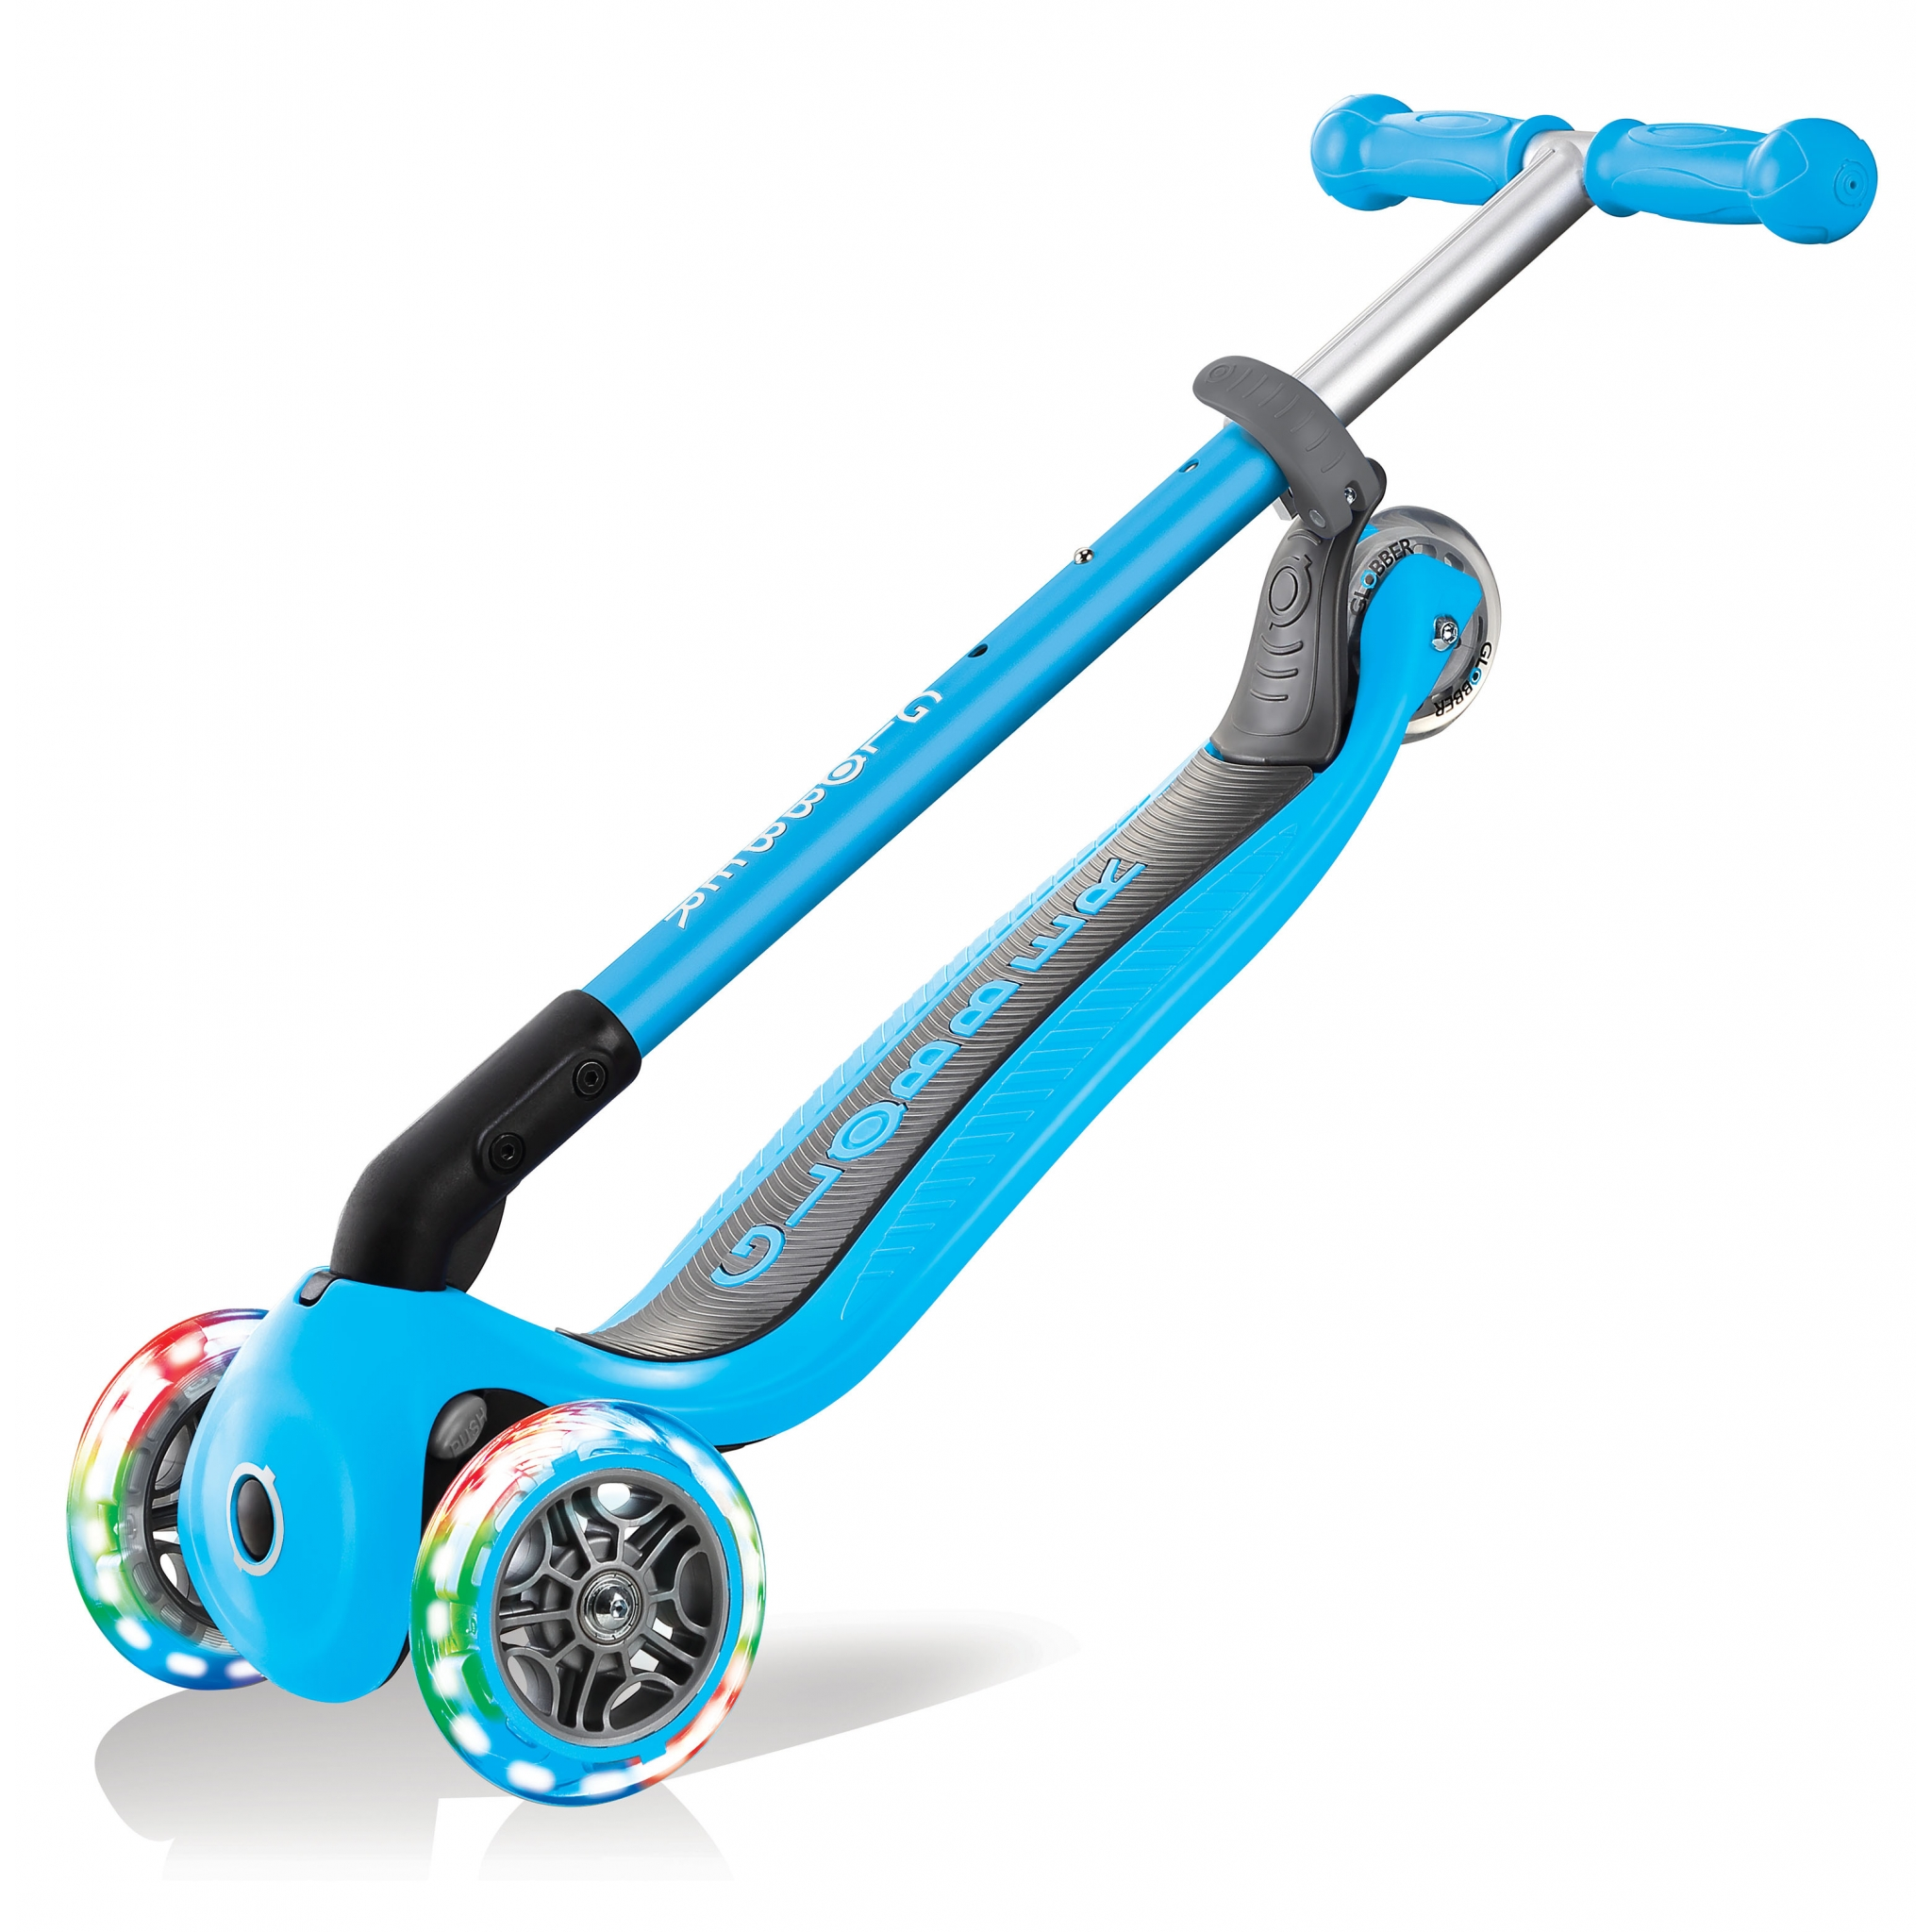 PRIMO-FOLDABLE-LIGHTS-3-wheel-foldable-scooter-for-kids-trolley-mode-sky-blue 2